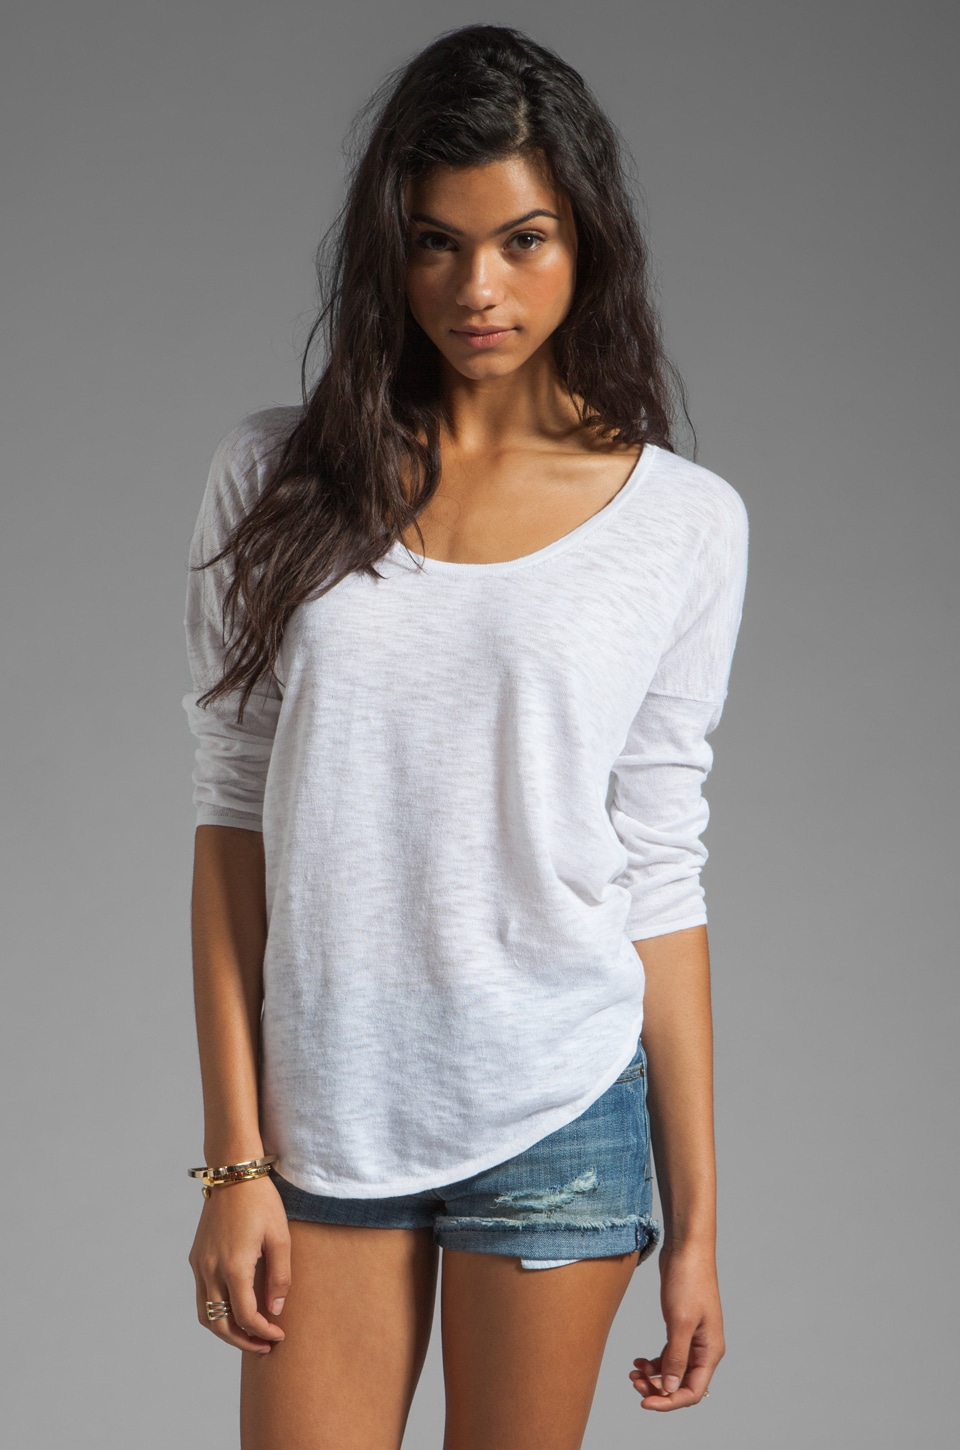 C&C California Dolman Tail Shirt in White